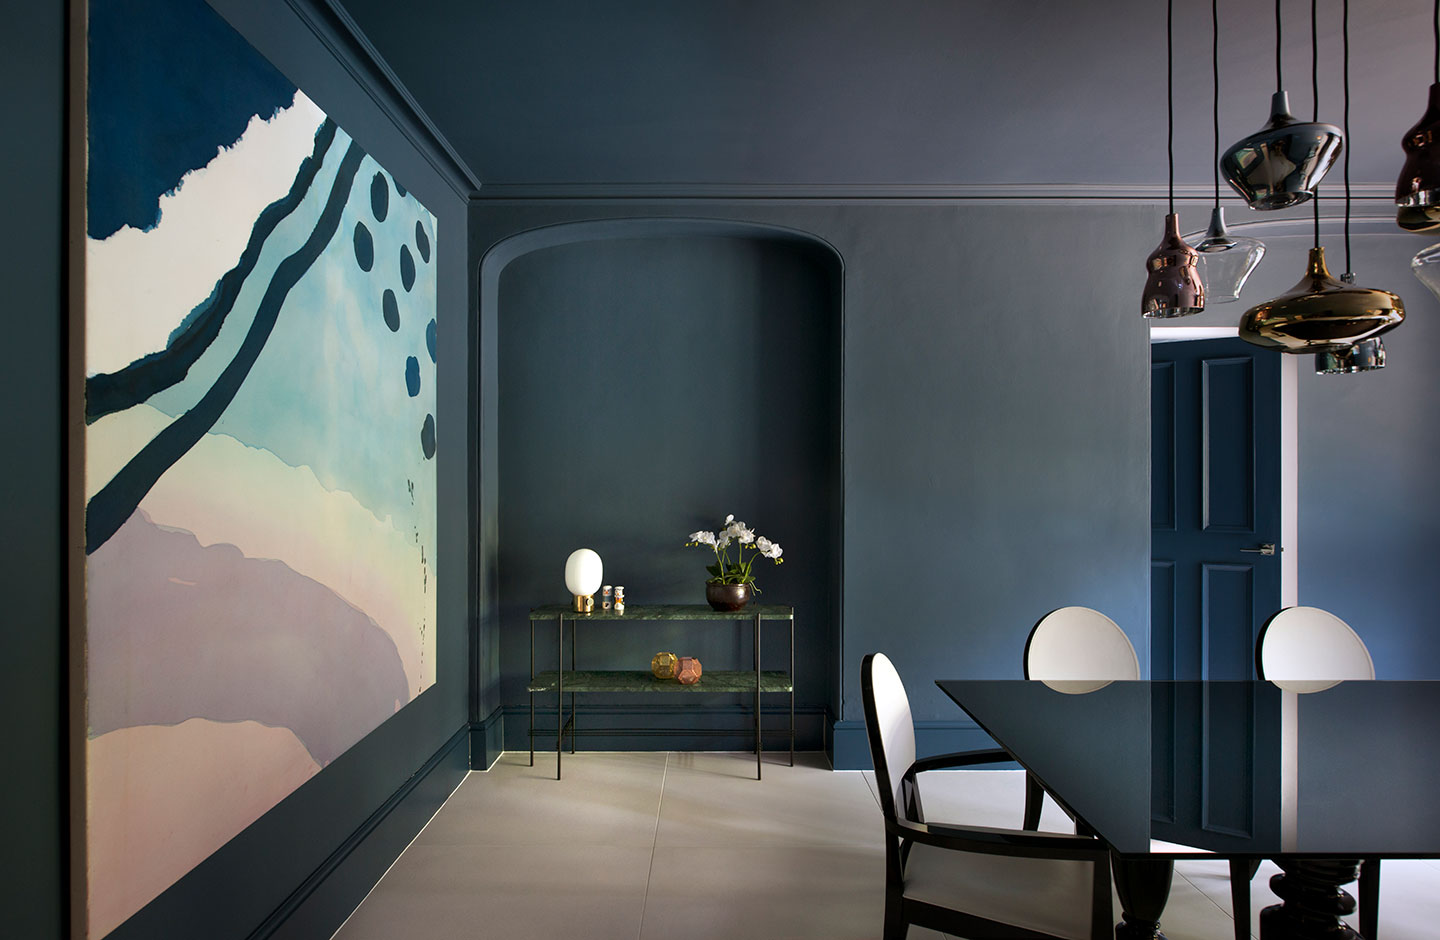 A stylish dining room interior, North London